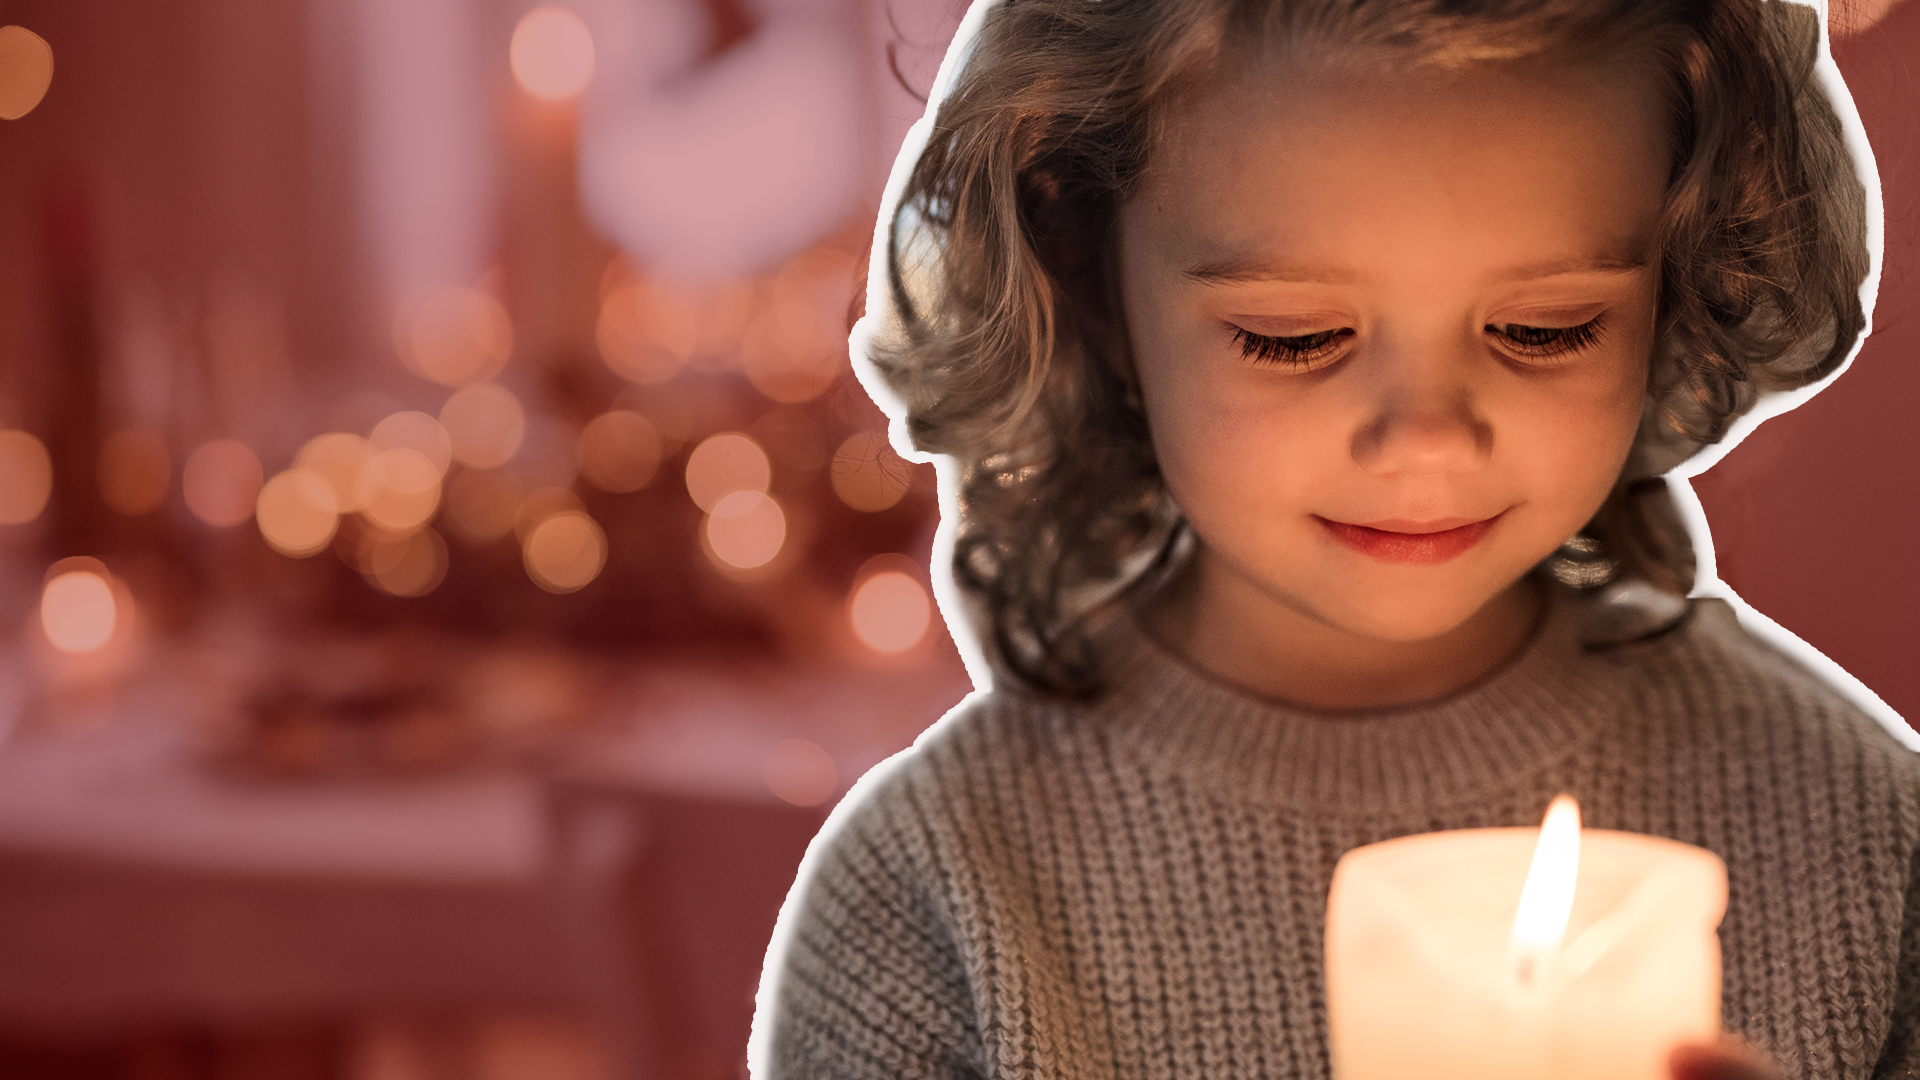 Young child holds a lit candle with christmas decorations in the background